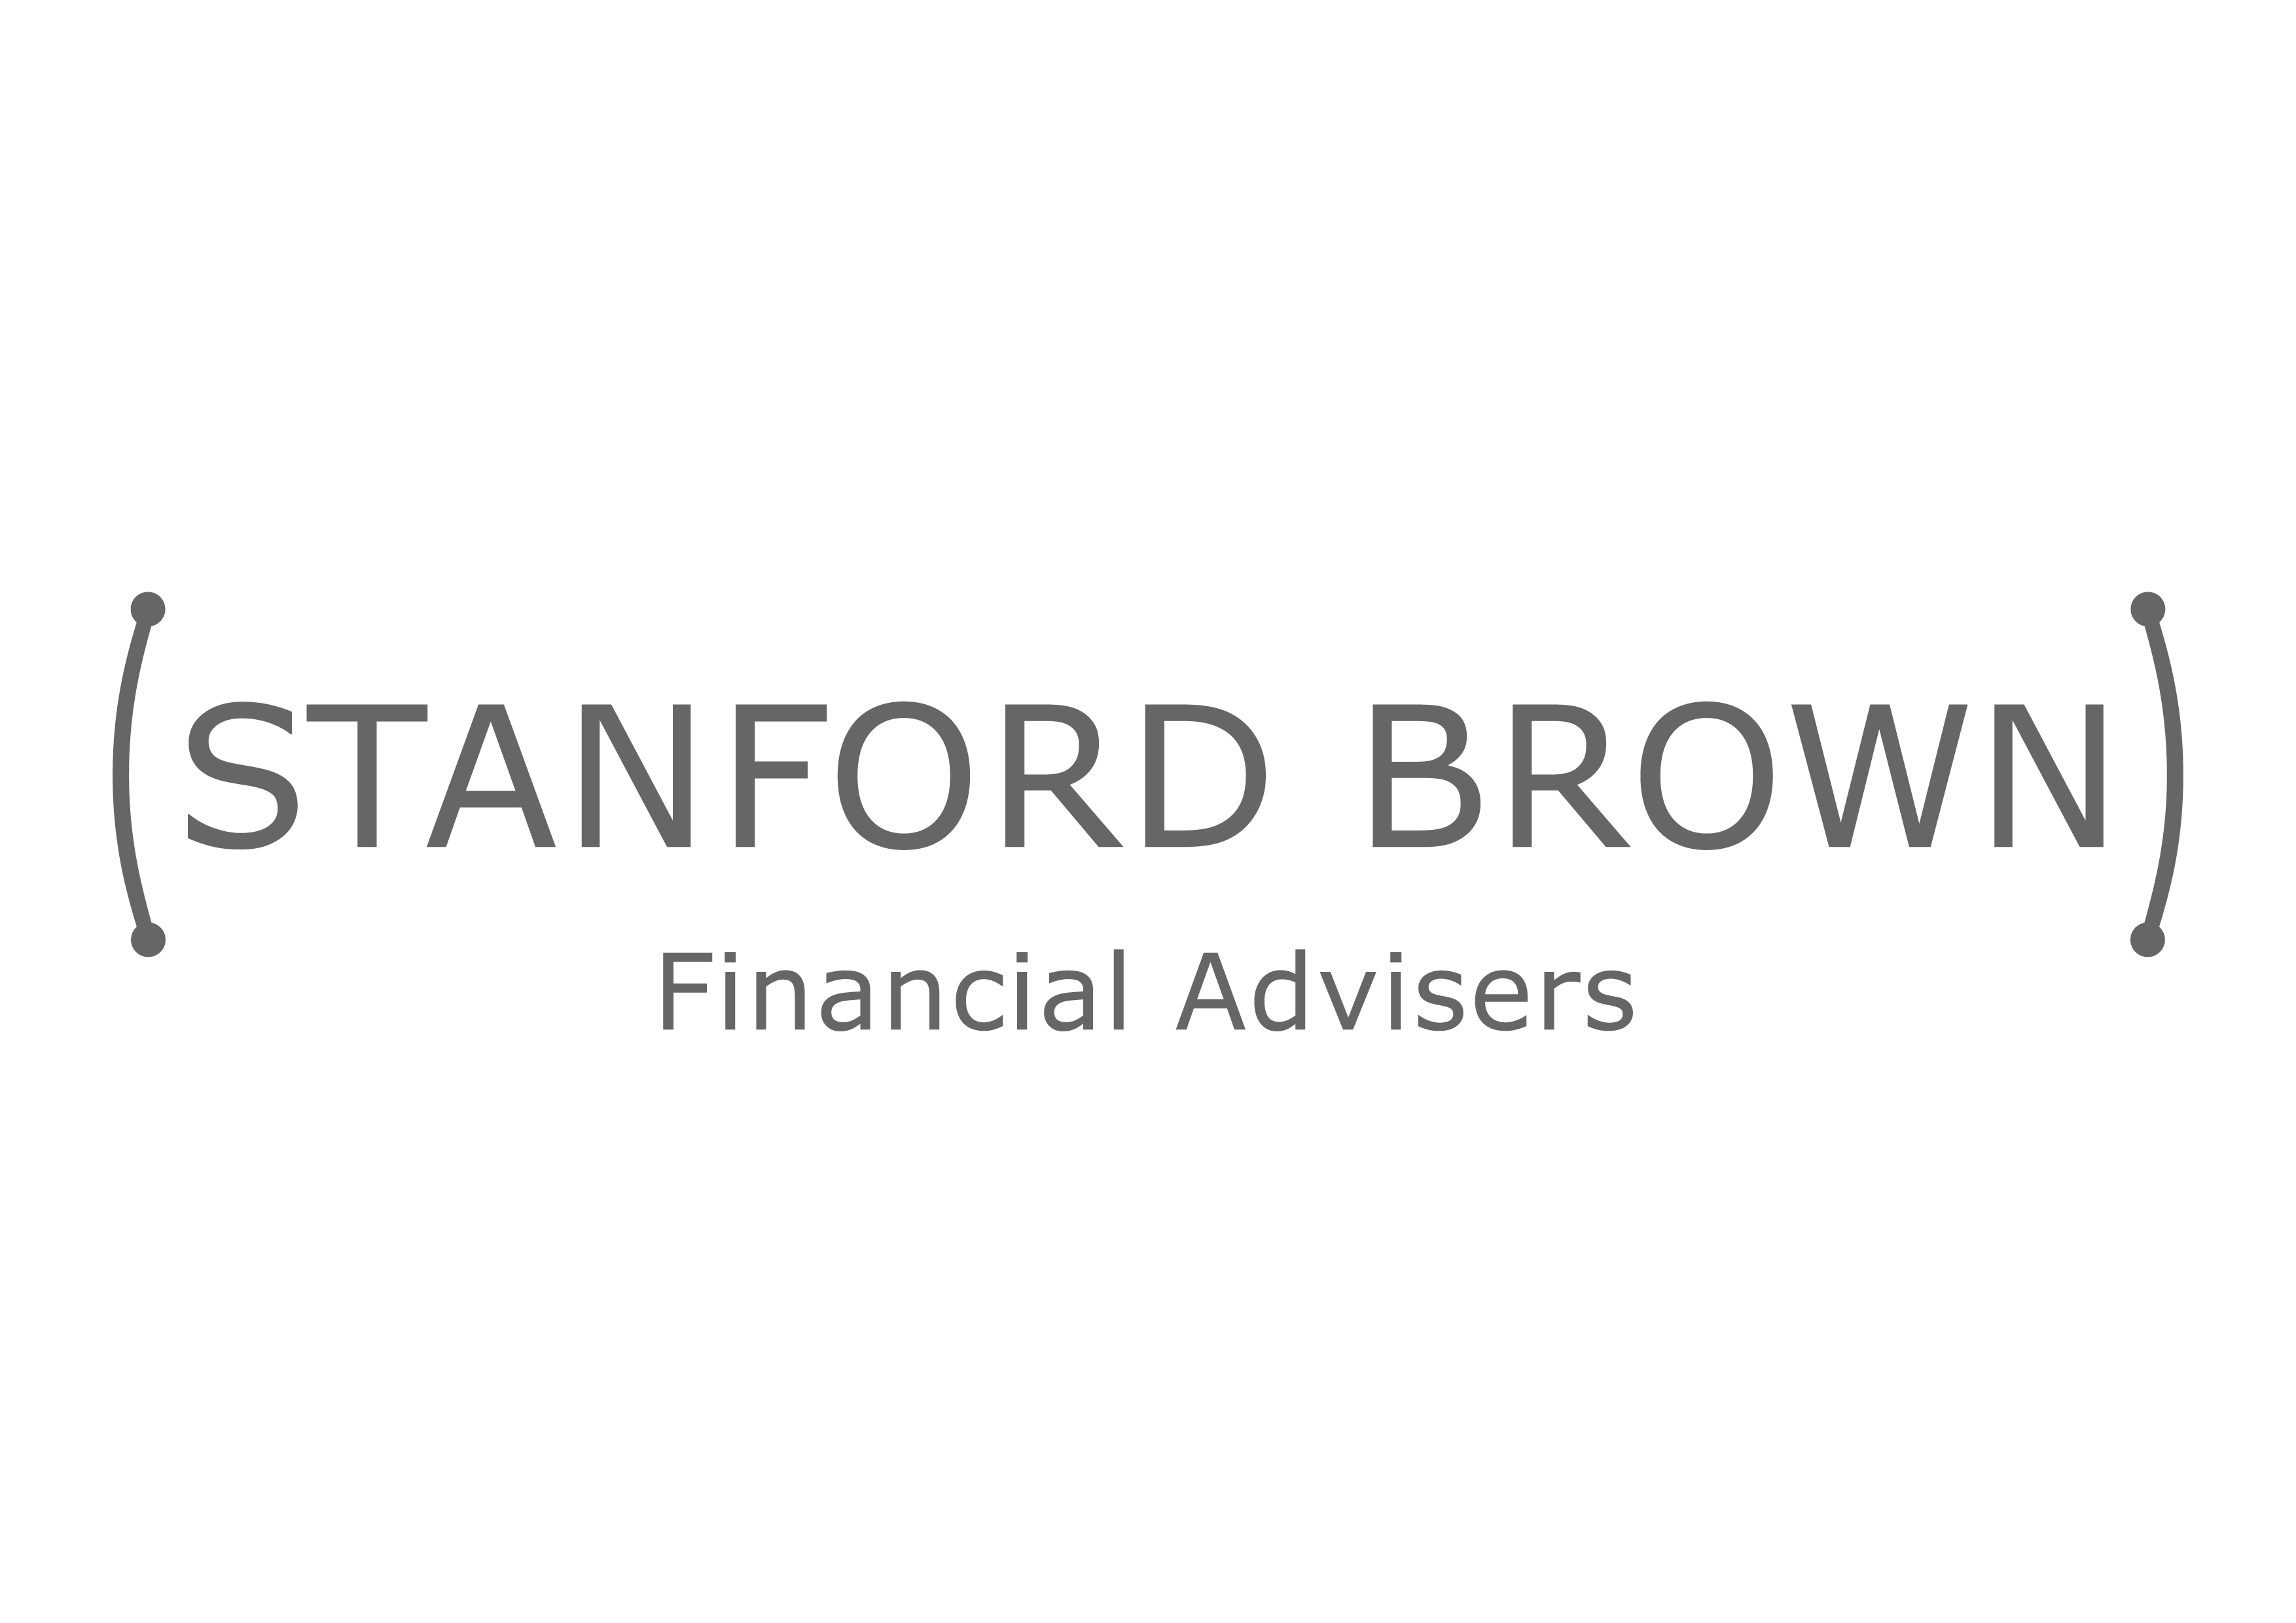 Stanford Brown